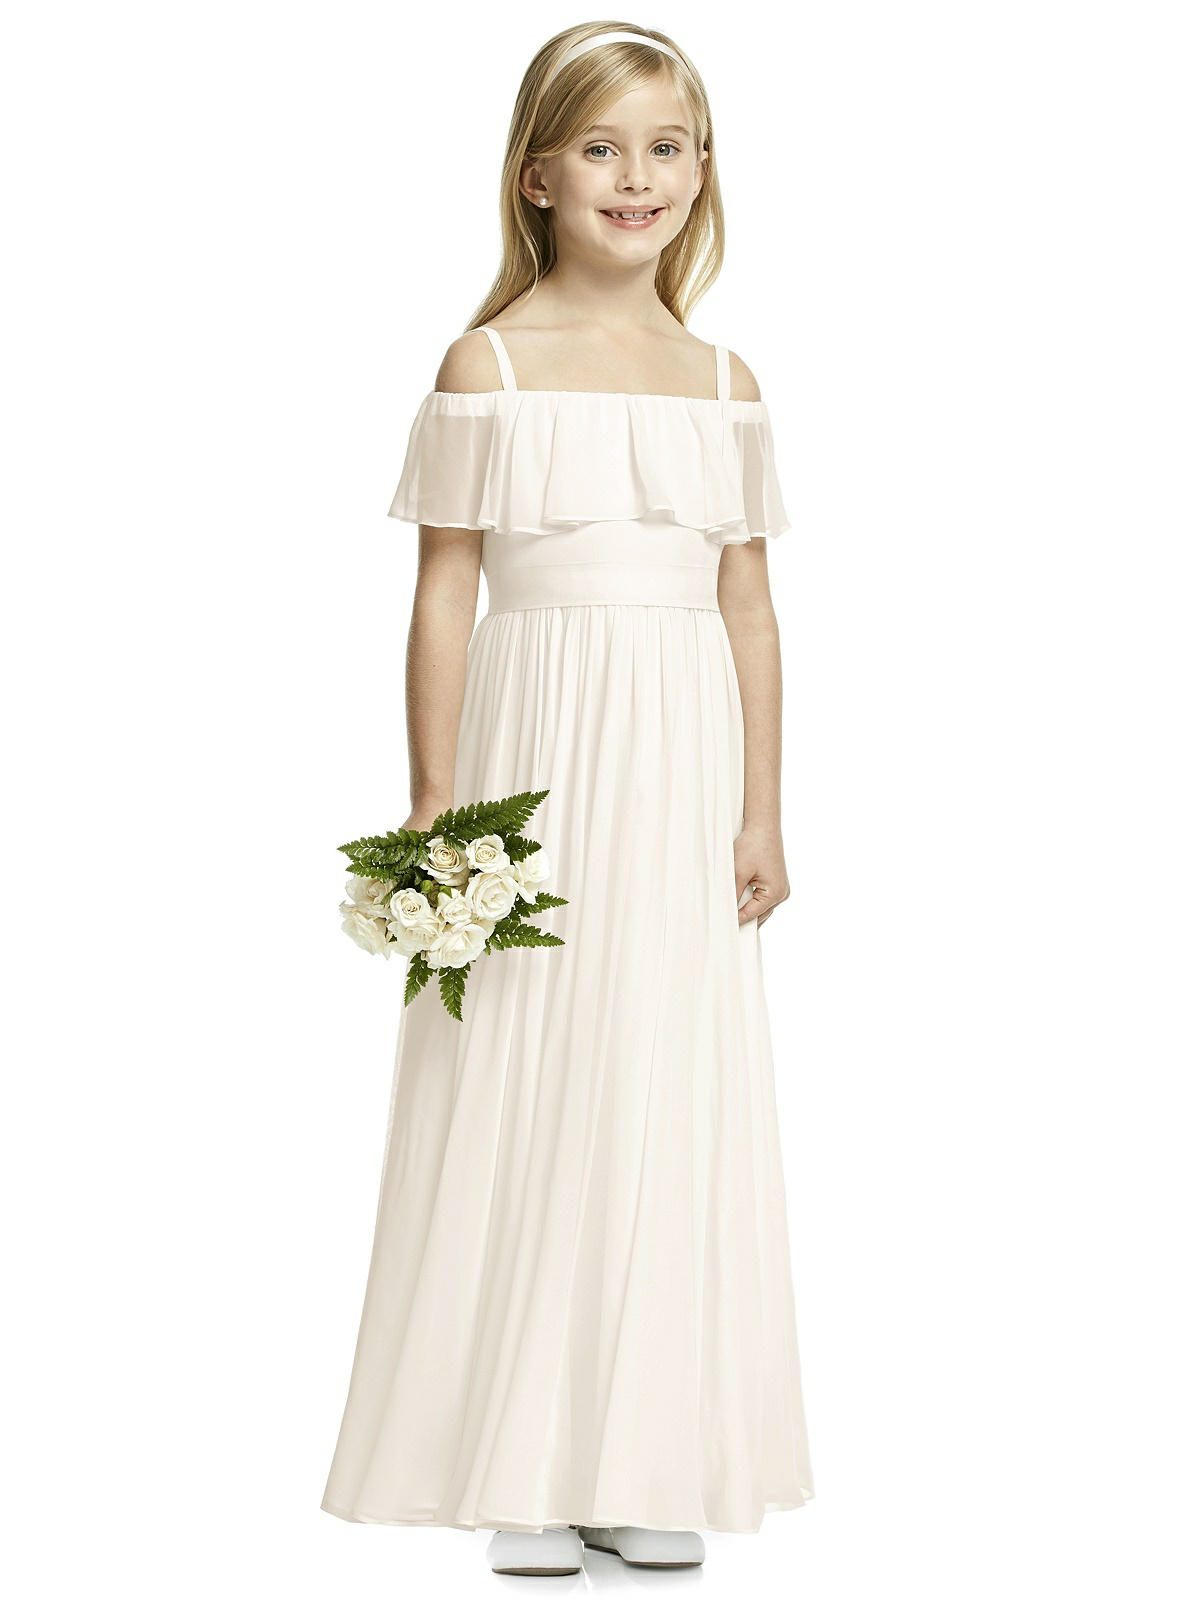 Wedding Floral Lace Overlay Flower girl dress Wedding Pageant Holiday Easter New